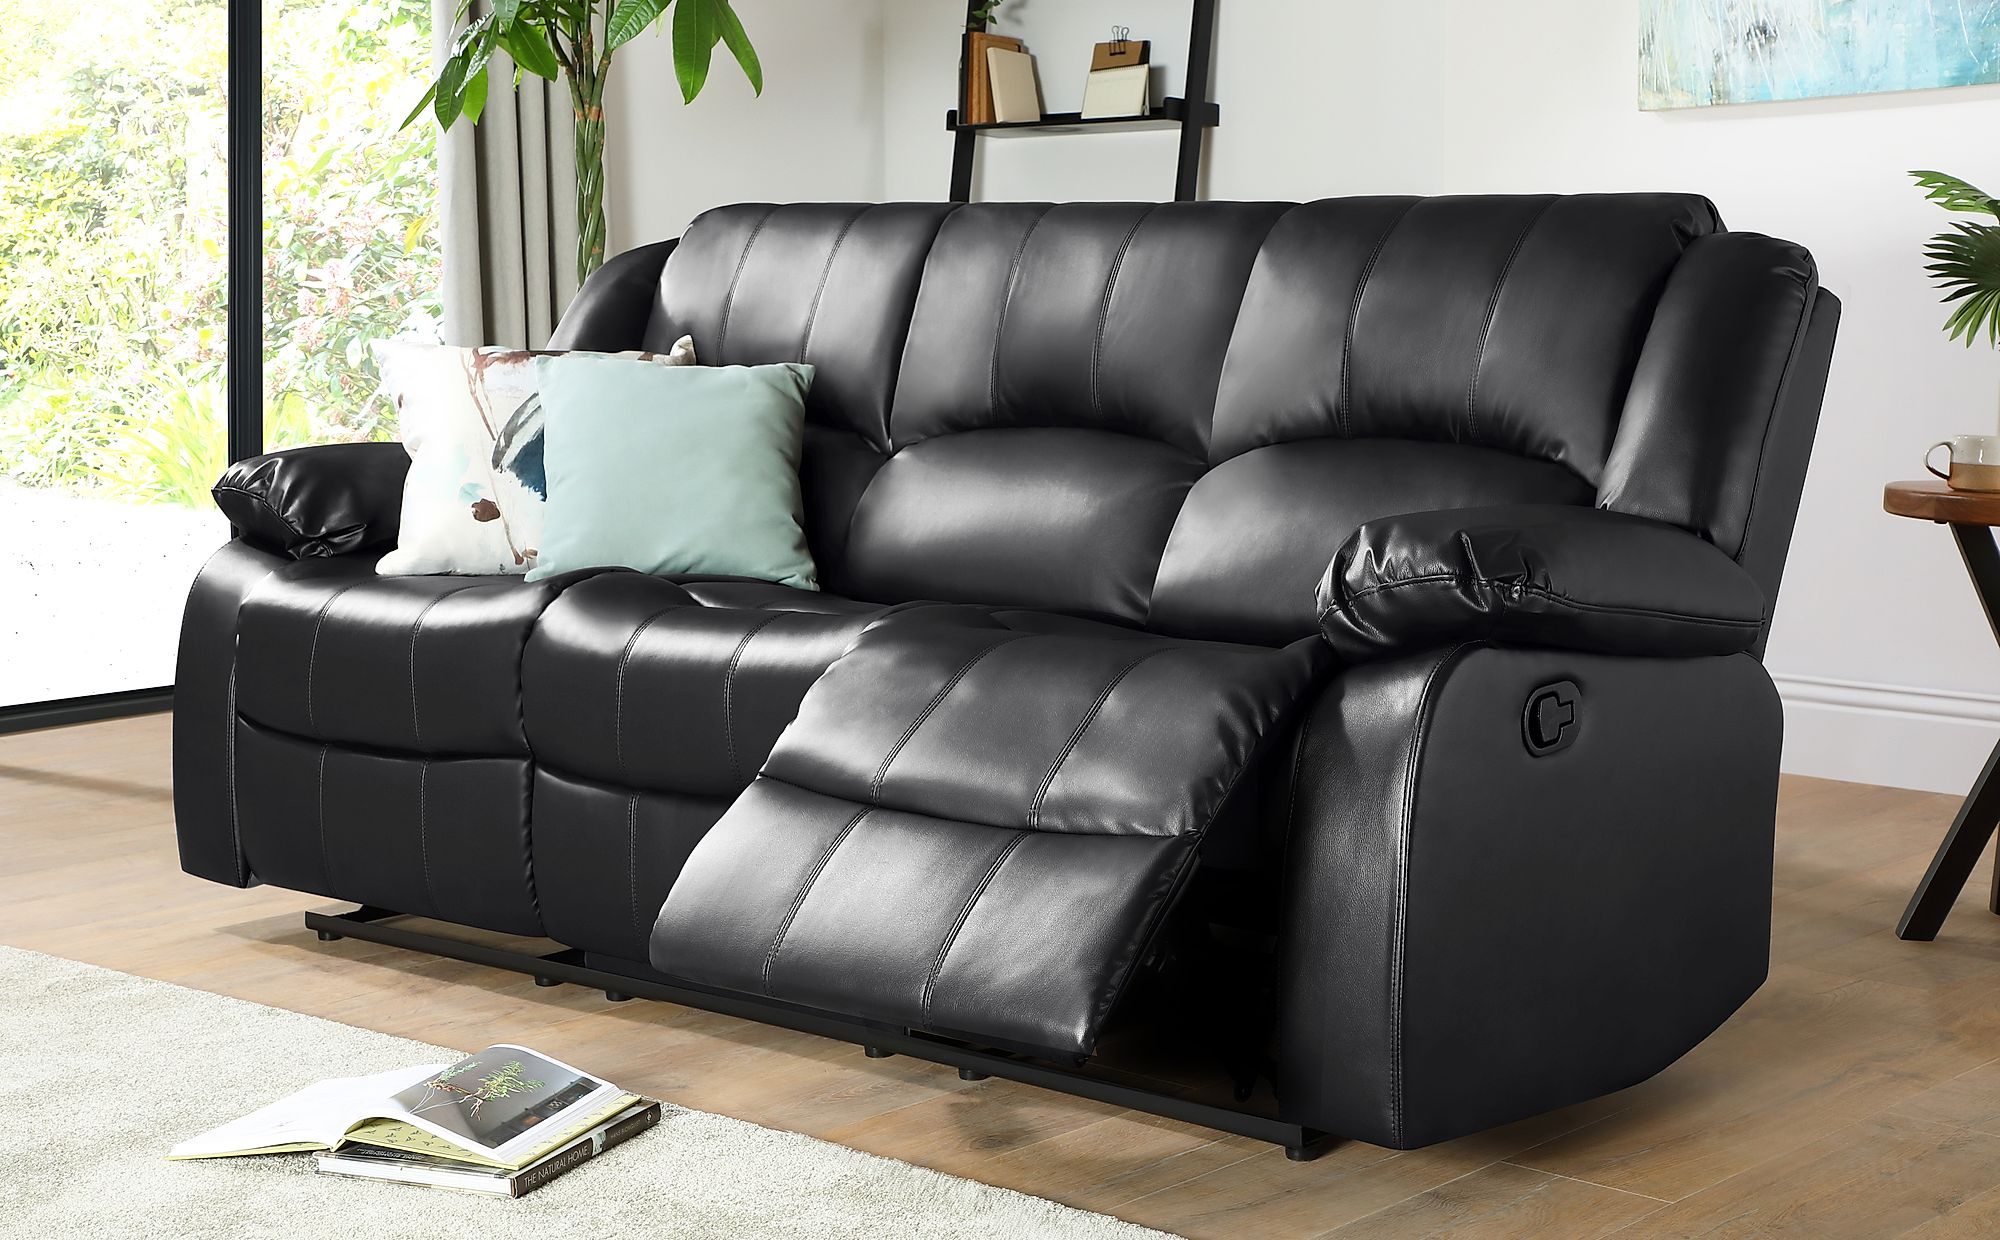 Dakota Black Leather 3 Seater Recliner Sofa